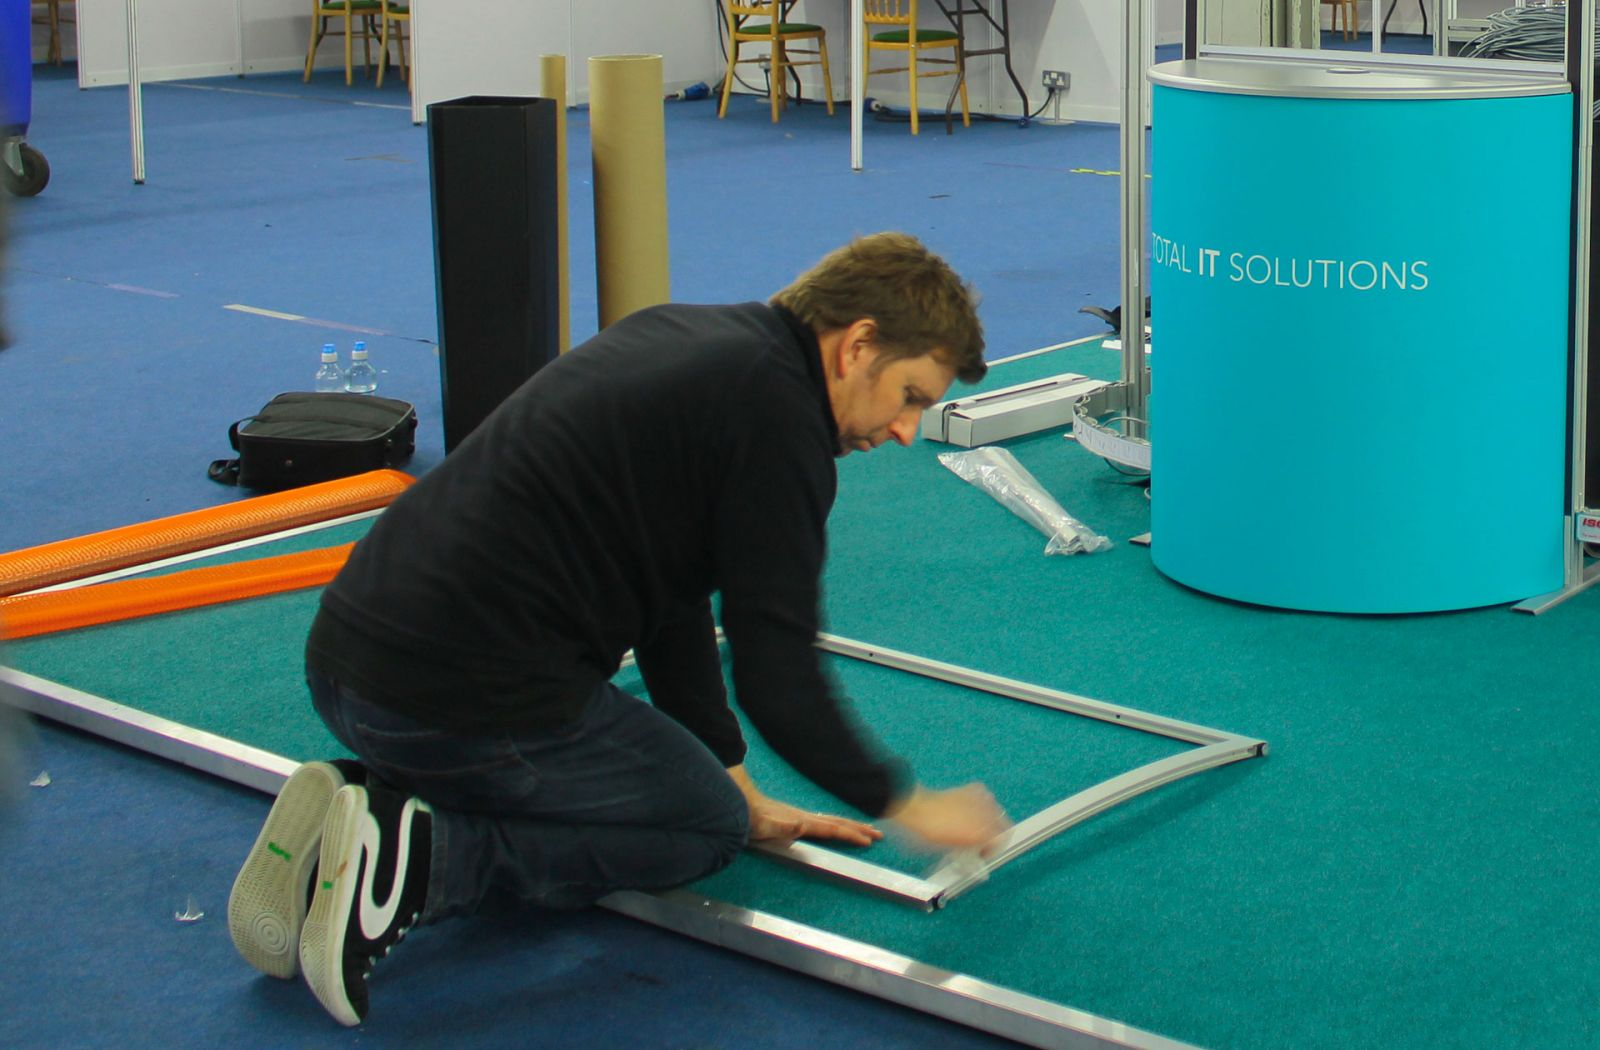 fitting exhibition systems